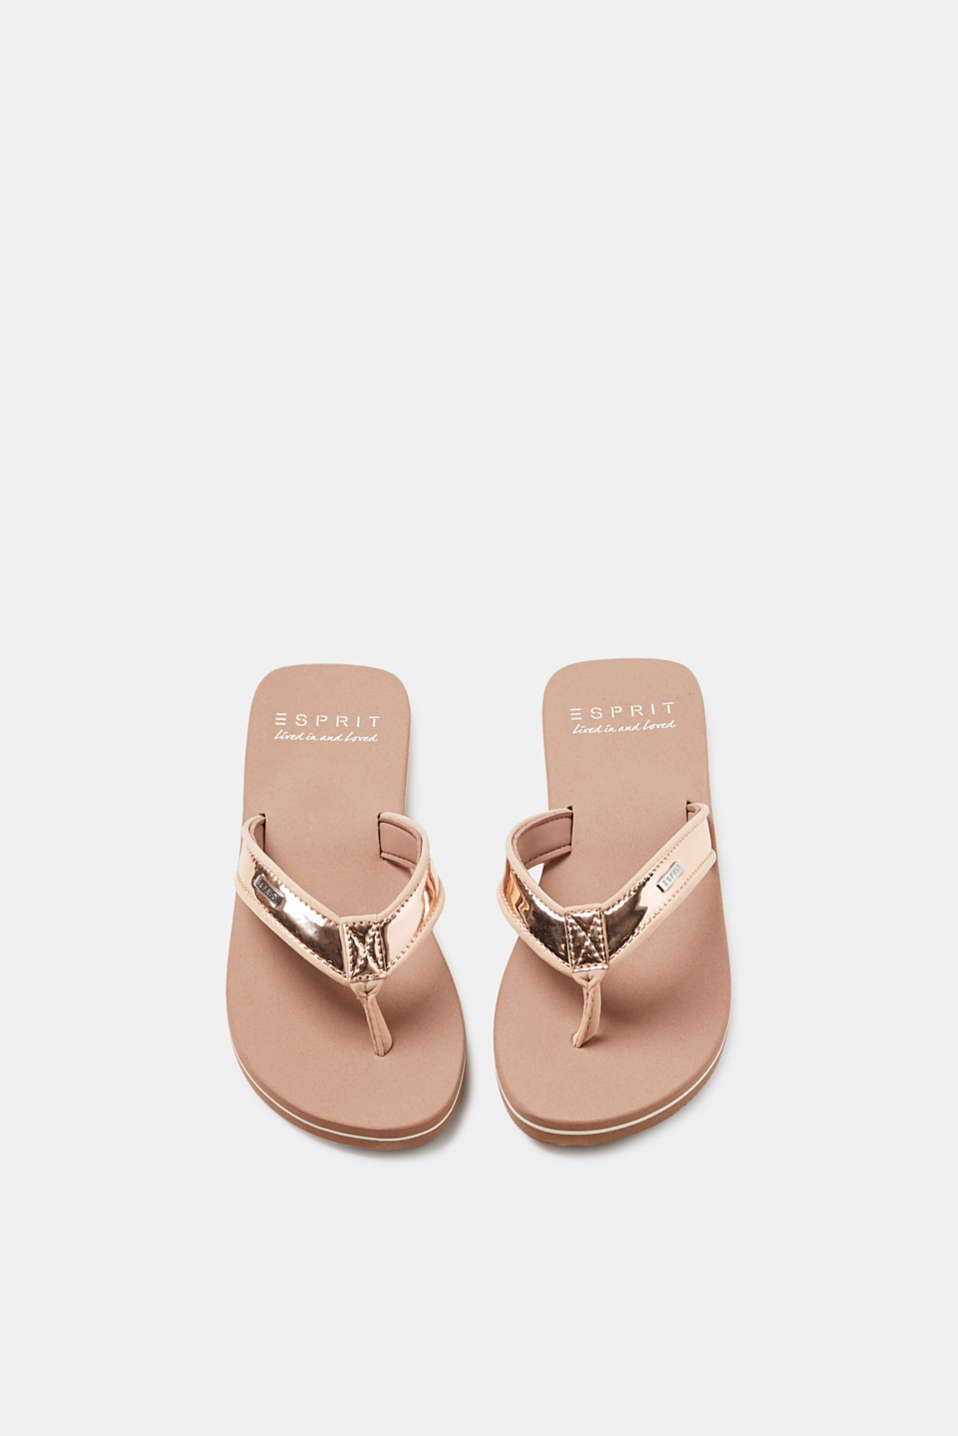 Slip slops with lack straps